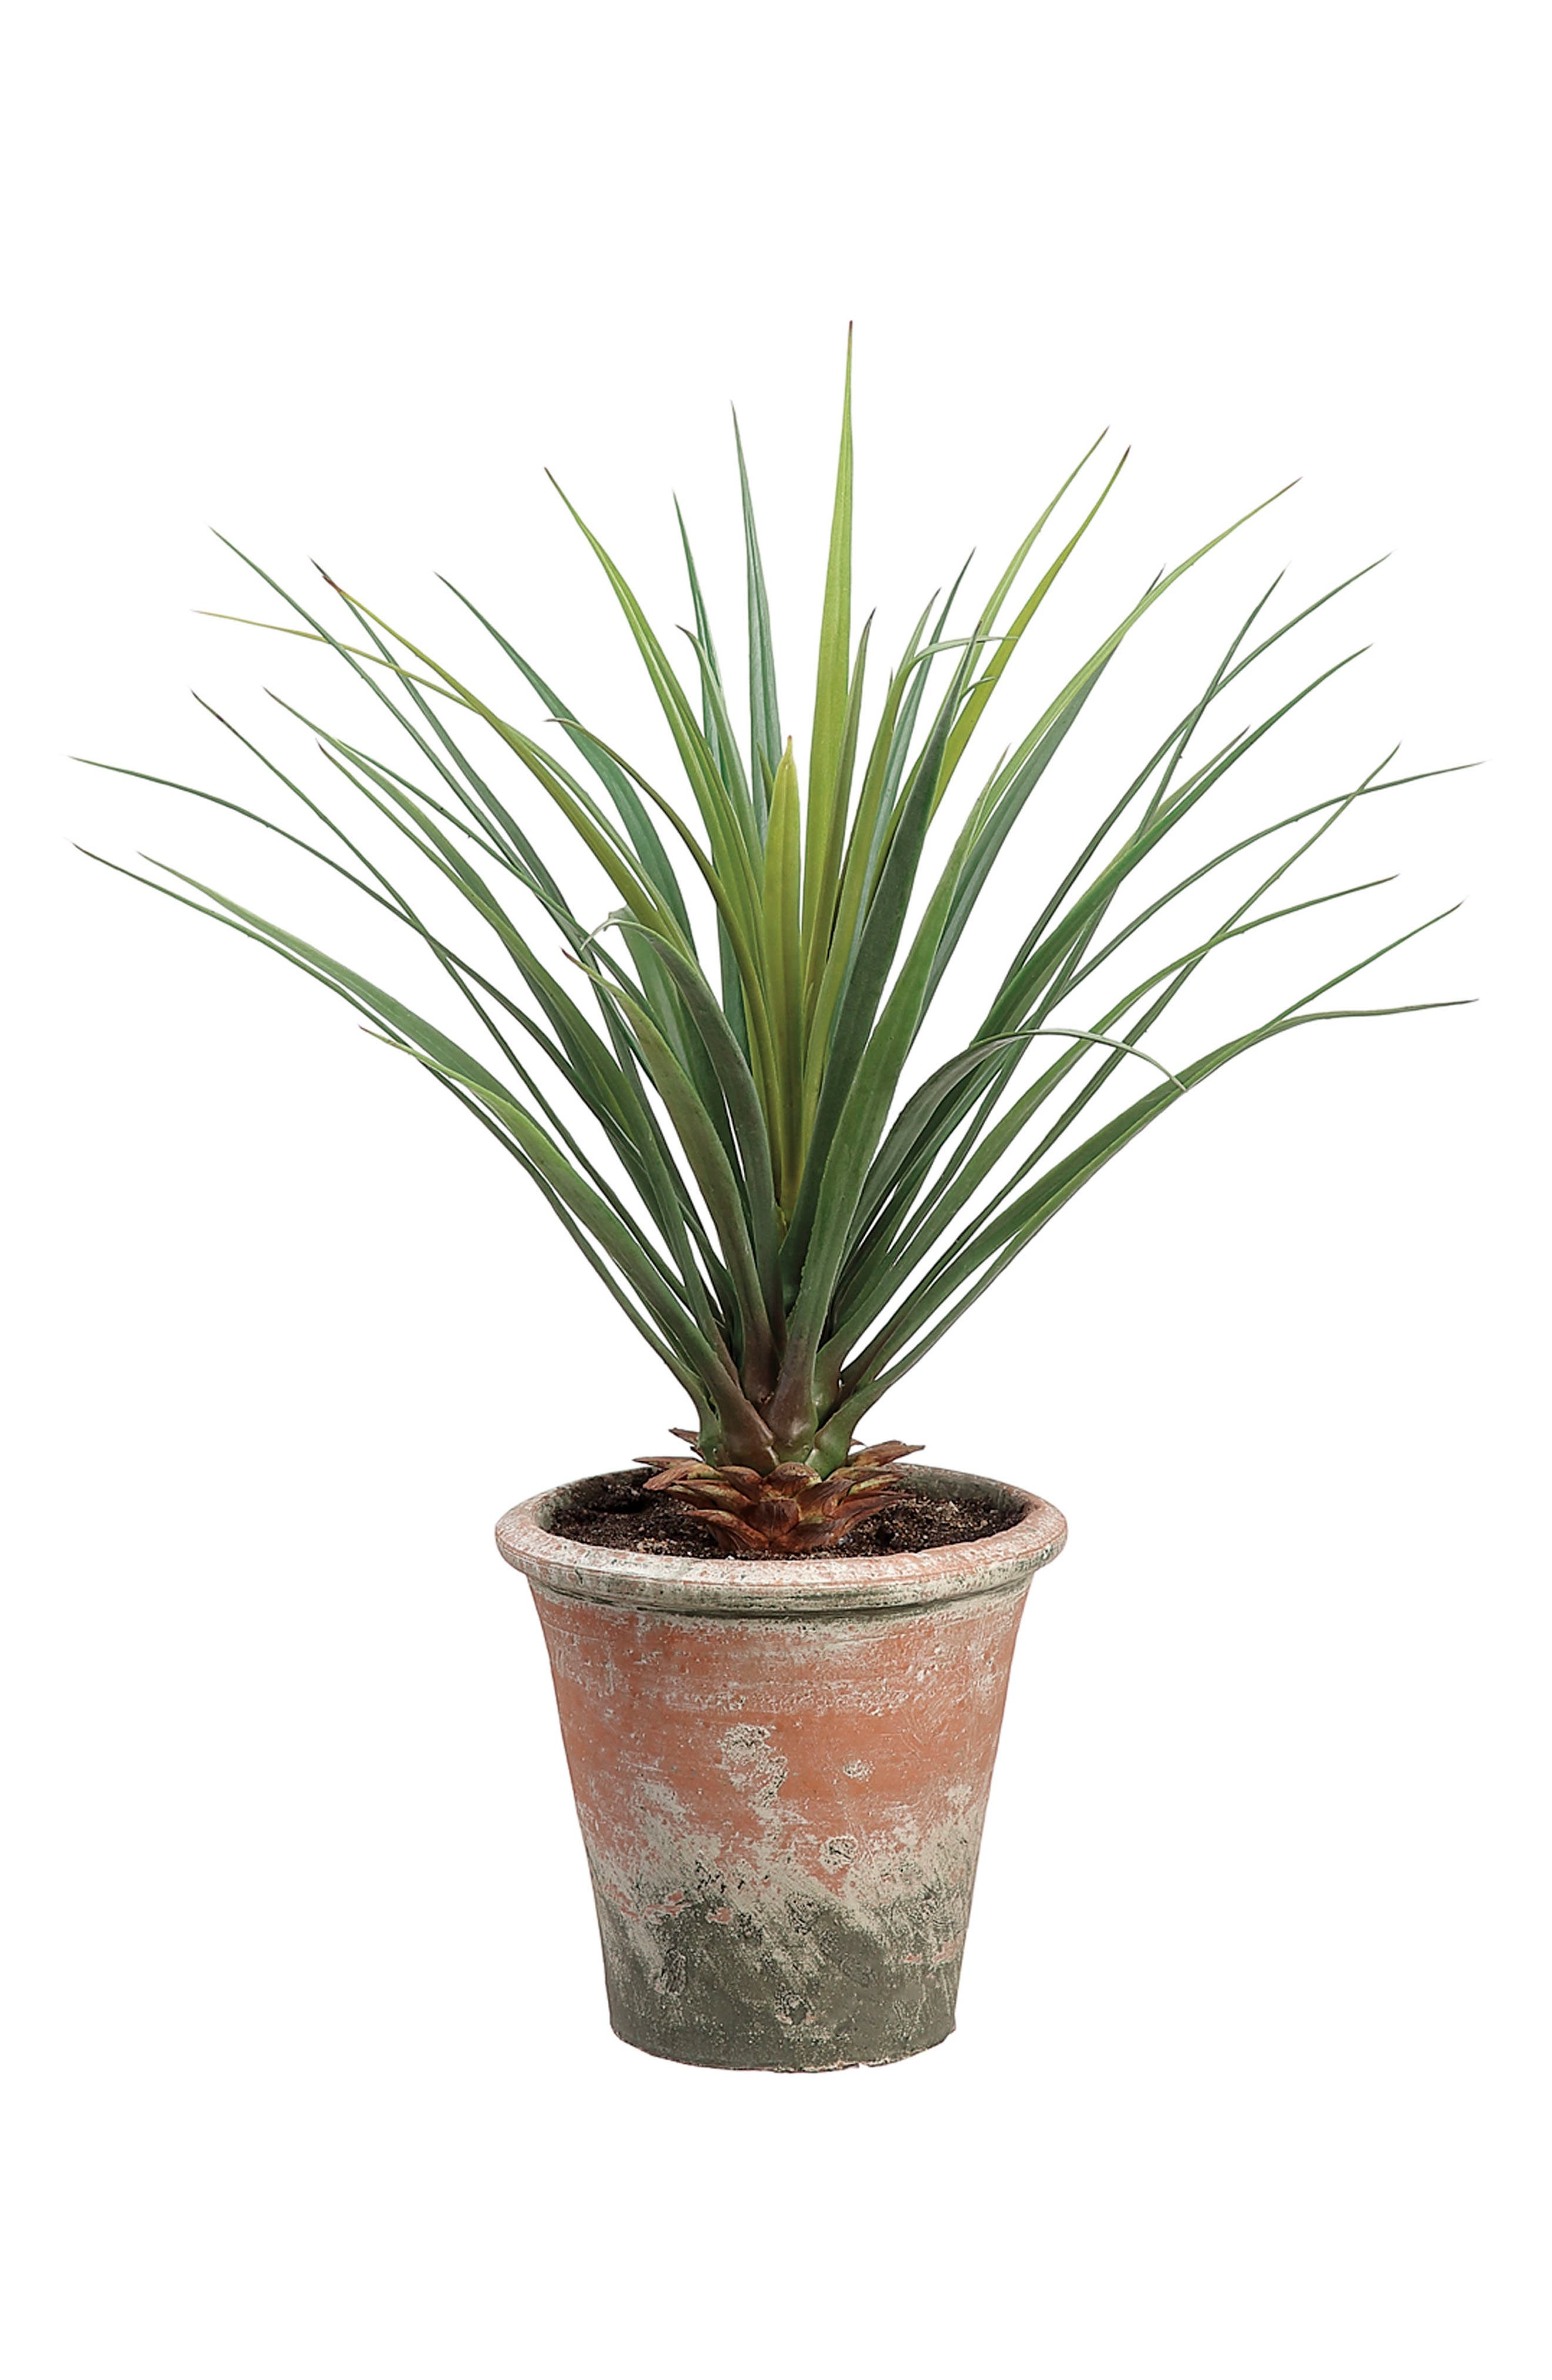 Main Image - ALLSTATE Yucca Plant Decoration